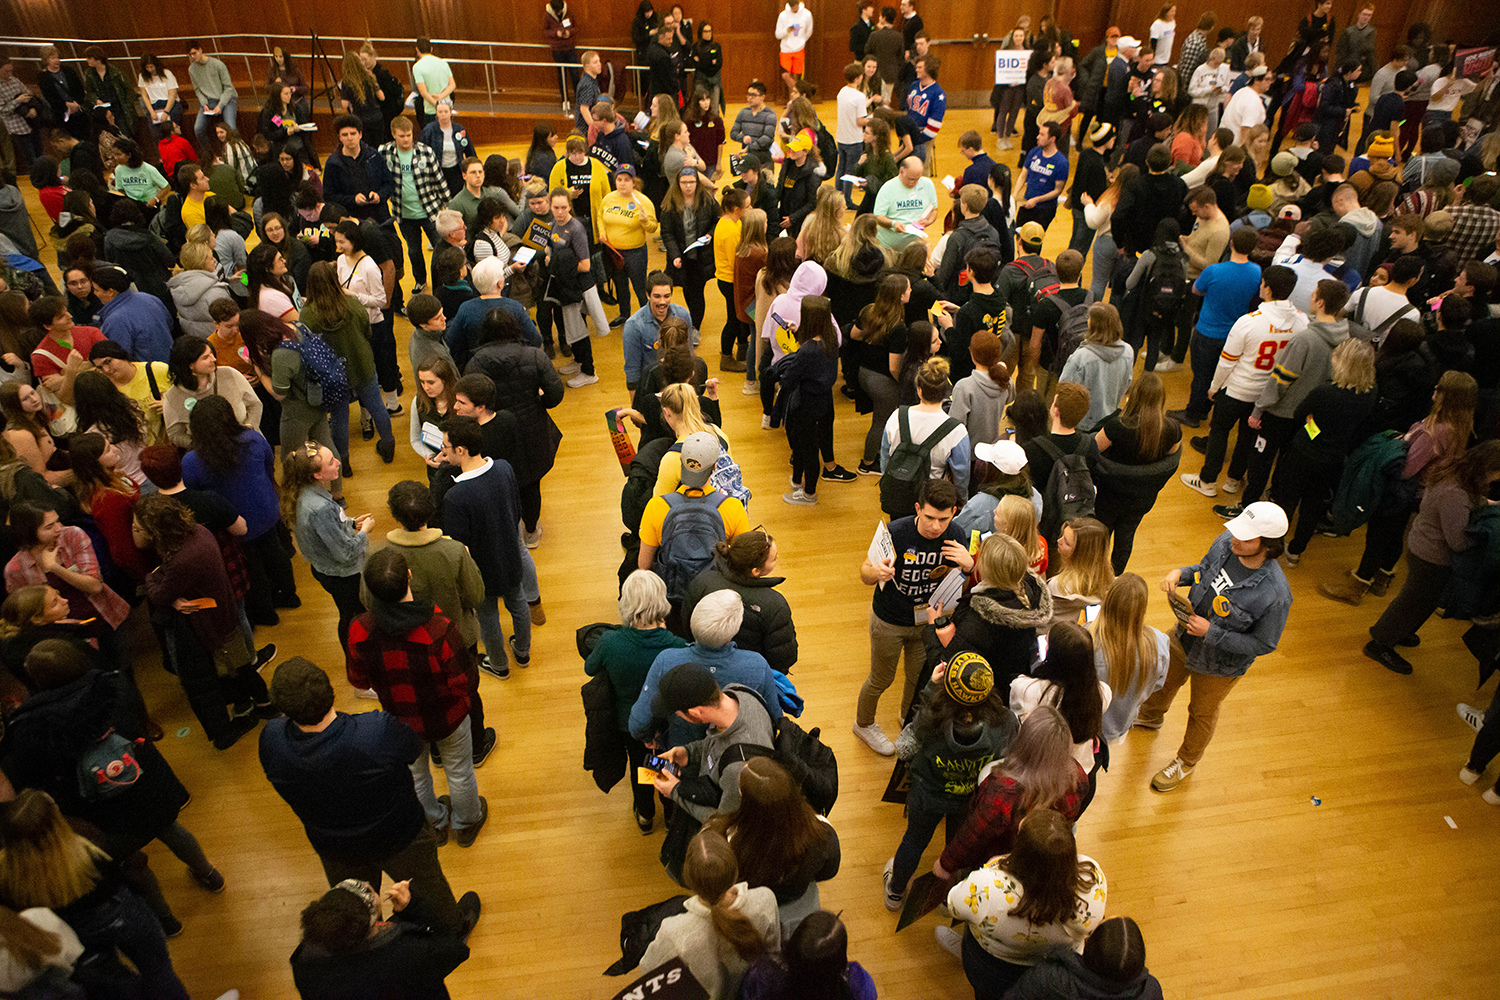 University of Iowa students form lines during the caucus at the Iowa Memorial Union on Monday February 3, 2020. (Megan Nagorzanski/The Daily Iowan)